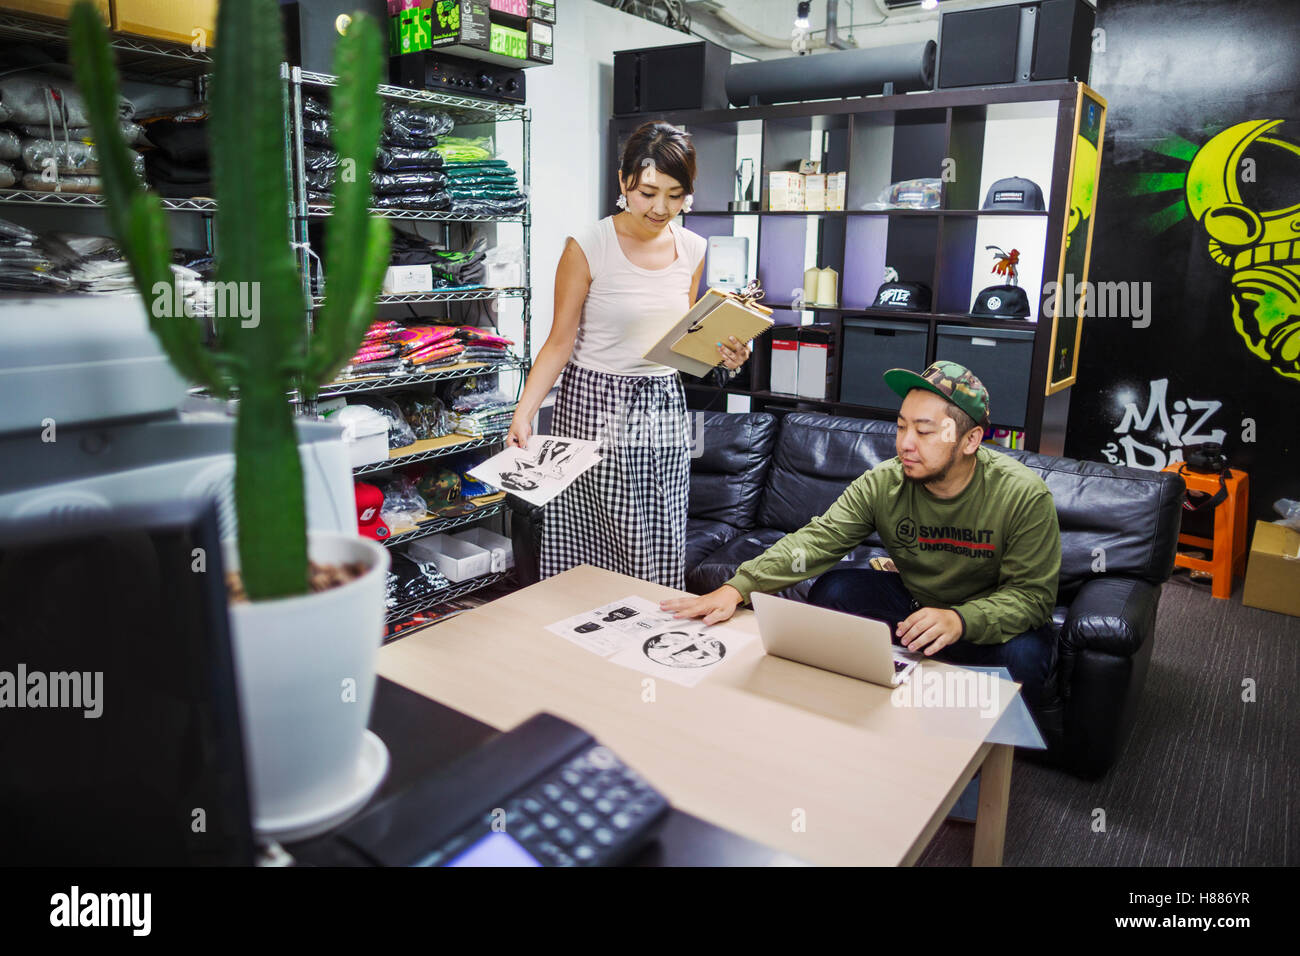 Design Studio. Two people in an office stockroom, looking at designs. Stock of clothes and hats on the shelves. - Stock Image